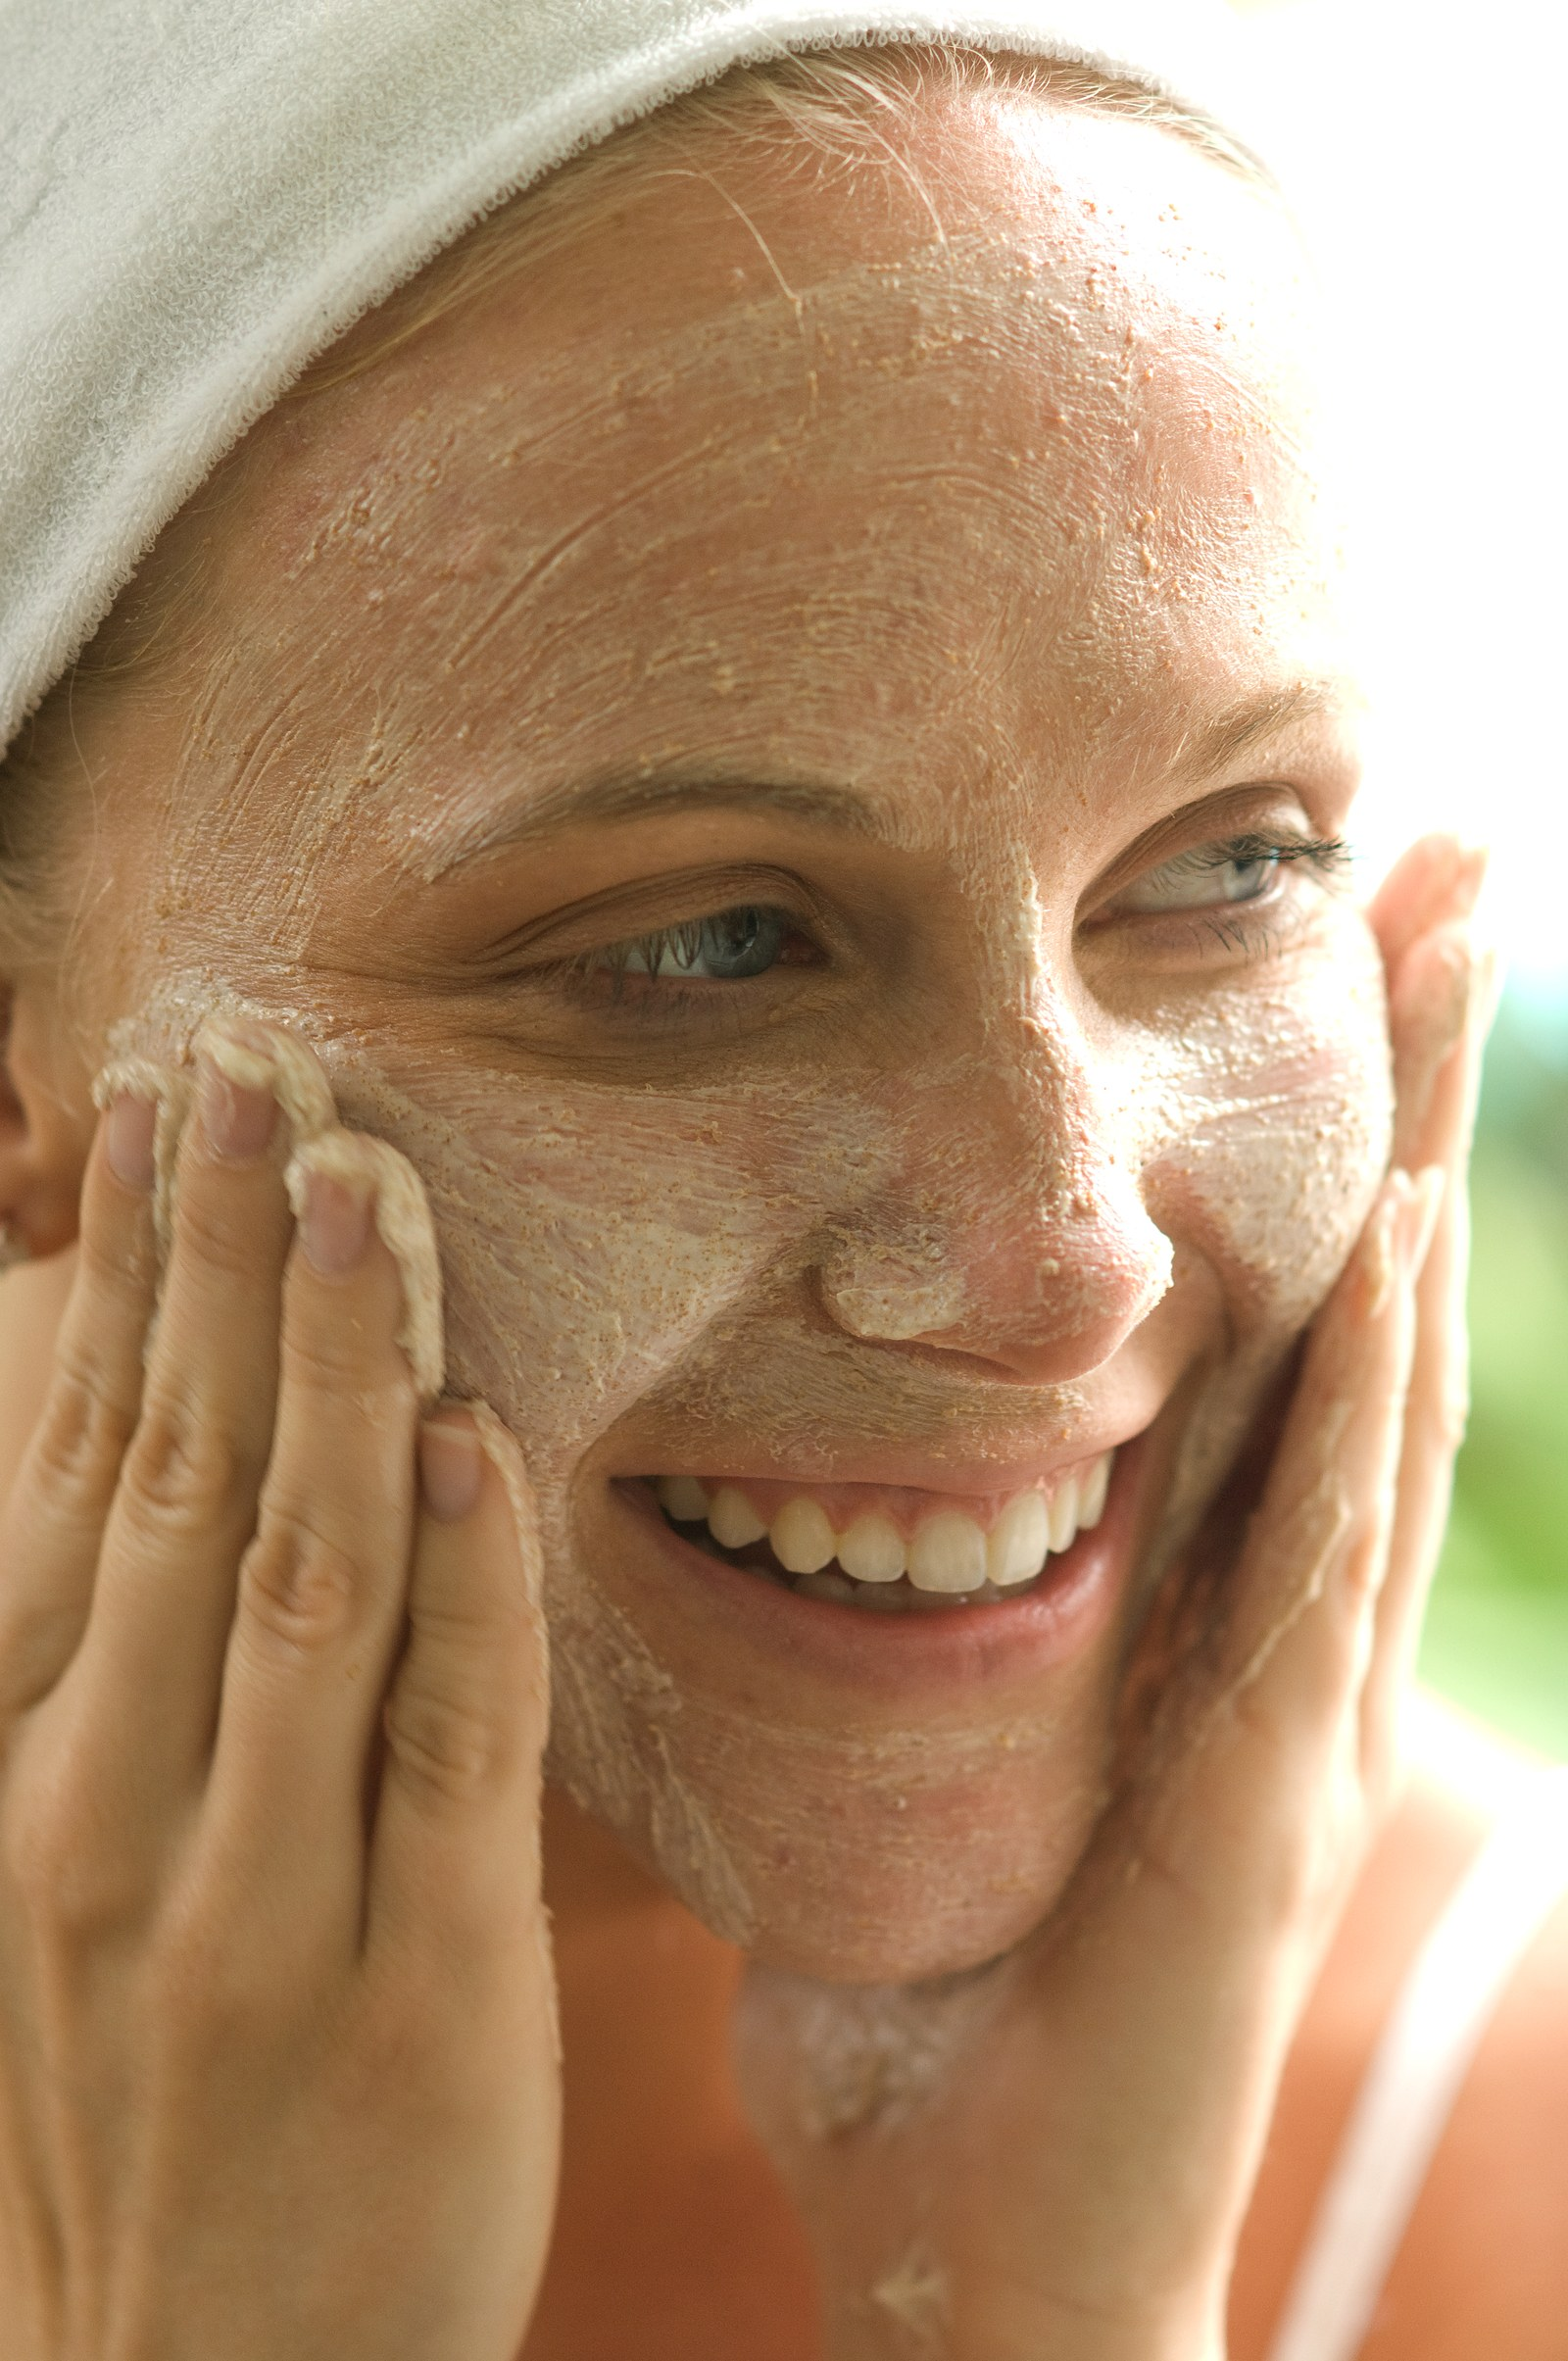 how20often20should20you20exfoliate20your20face